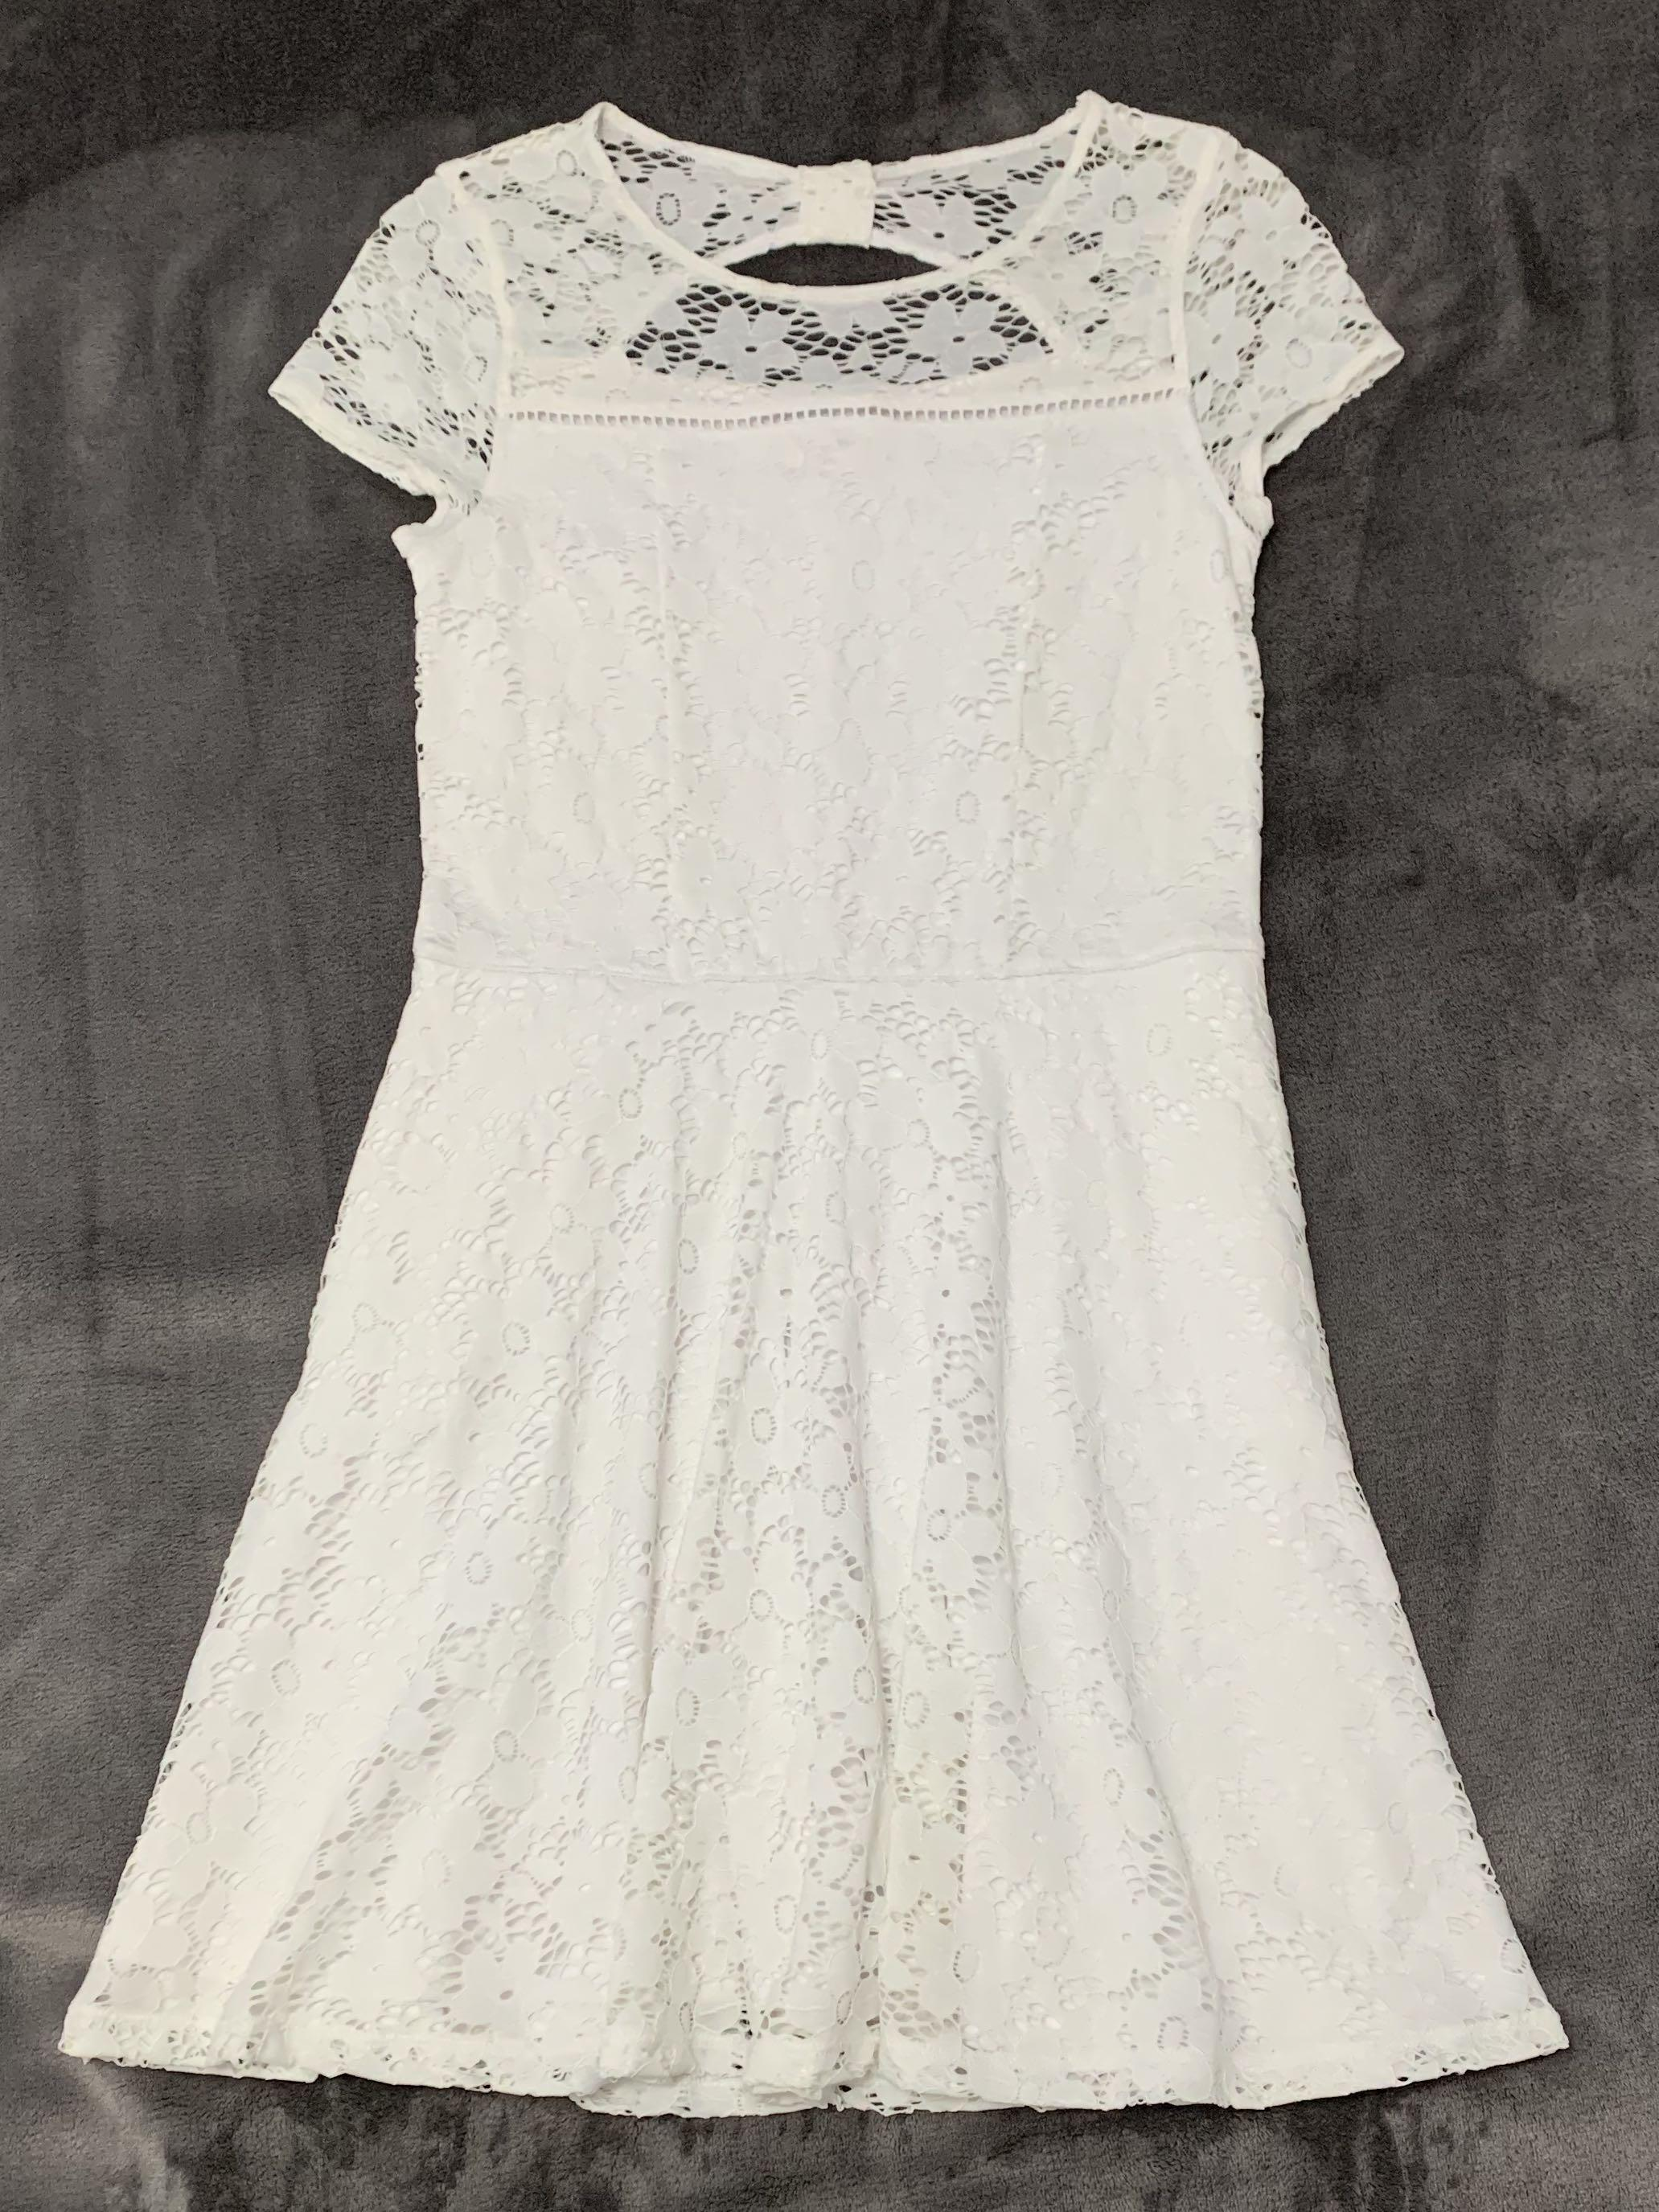 Abercrombie Kids Lace Spring Dress